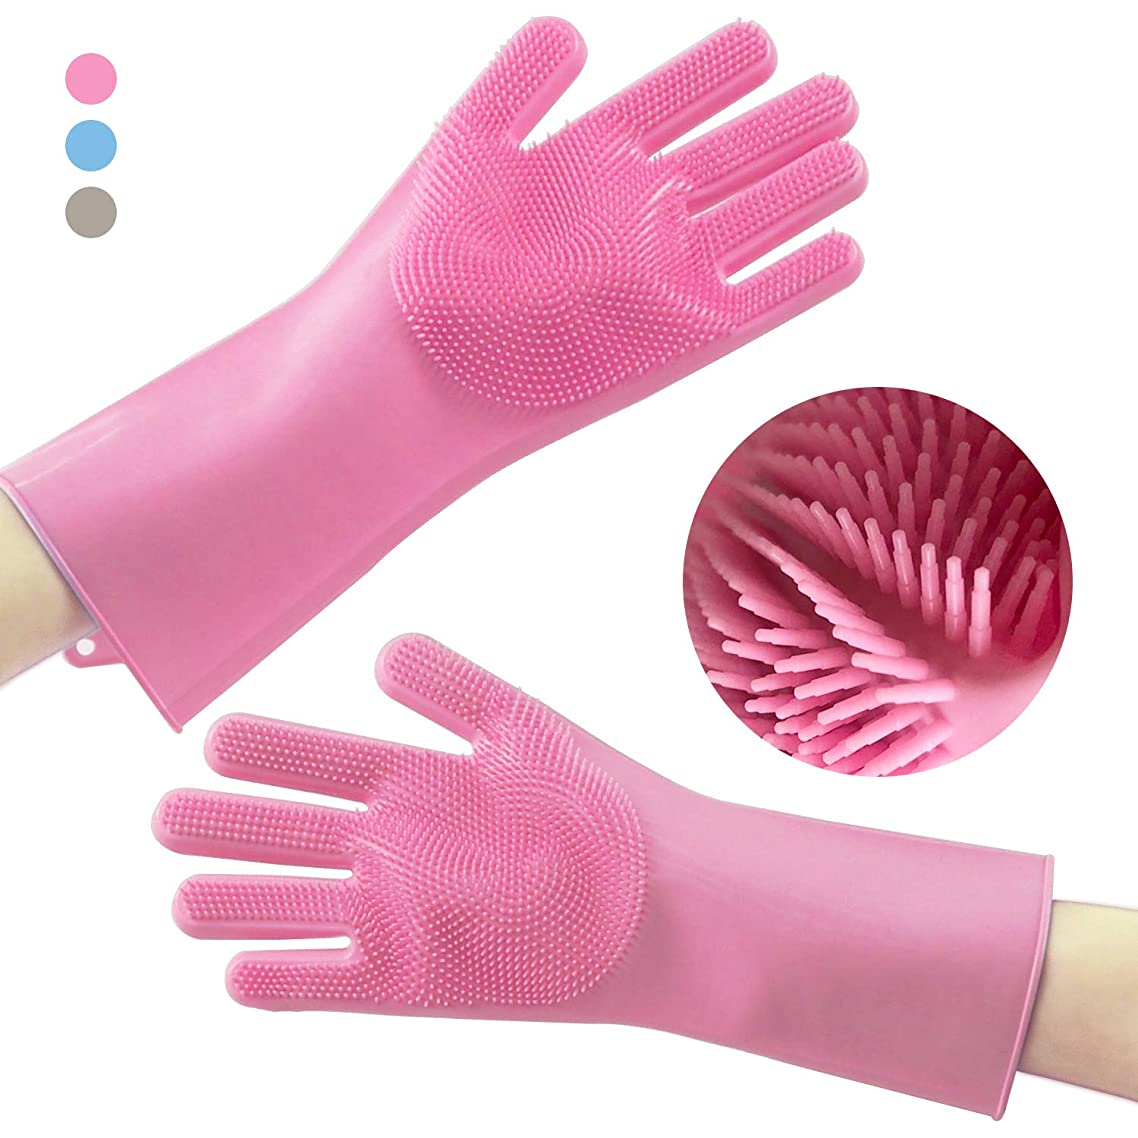 JuneLady Silicone Dishwashing Gloves with Wash Scrubber Magic Gloves Heat Resistant Waterproof Gloves for Kitchen, Bathroom, Pet Grooming, Car Washing